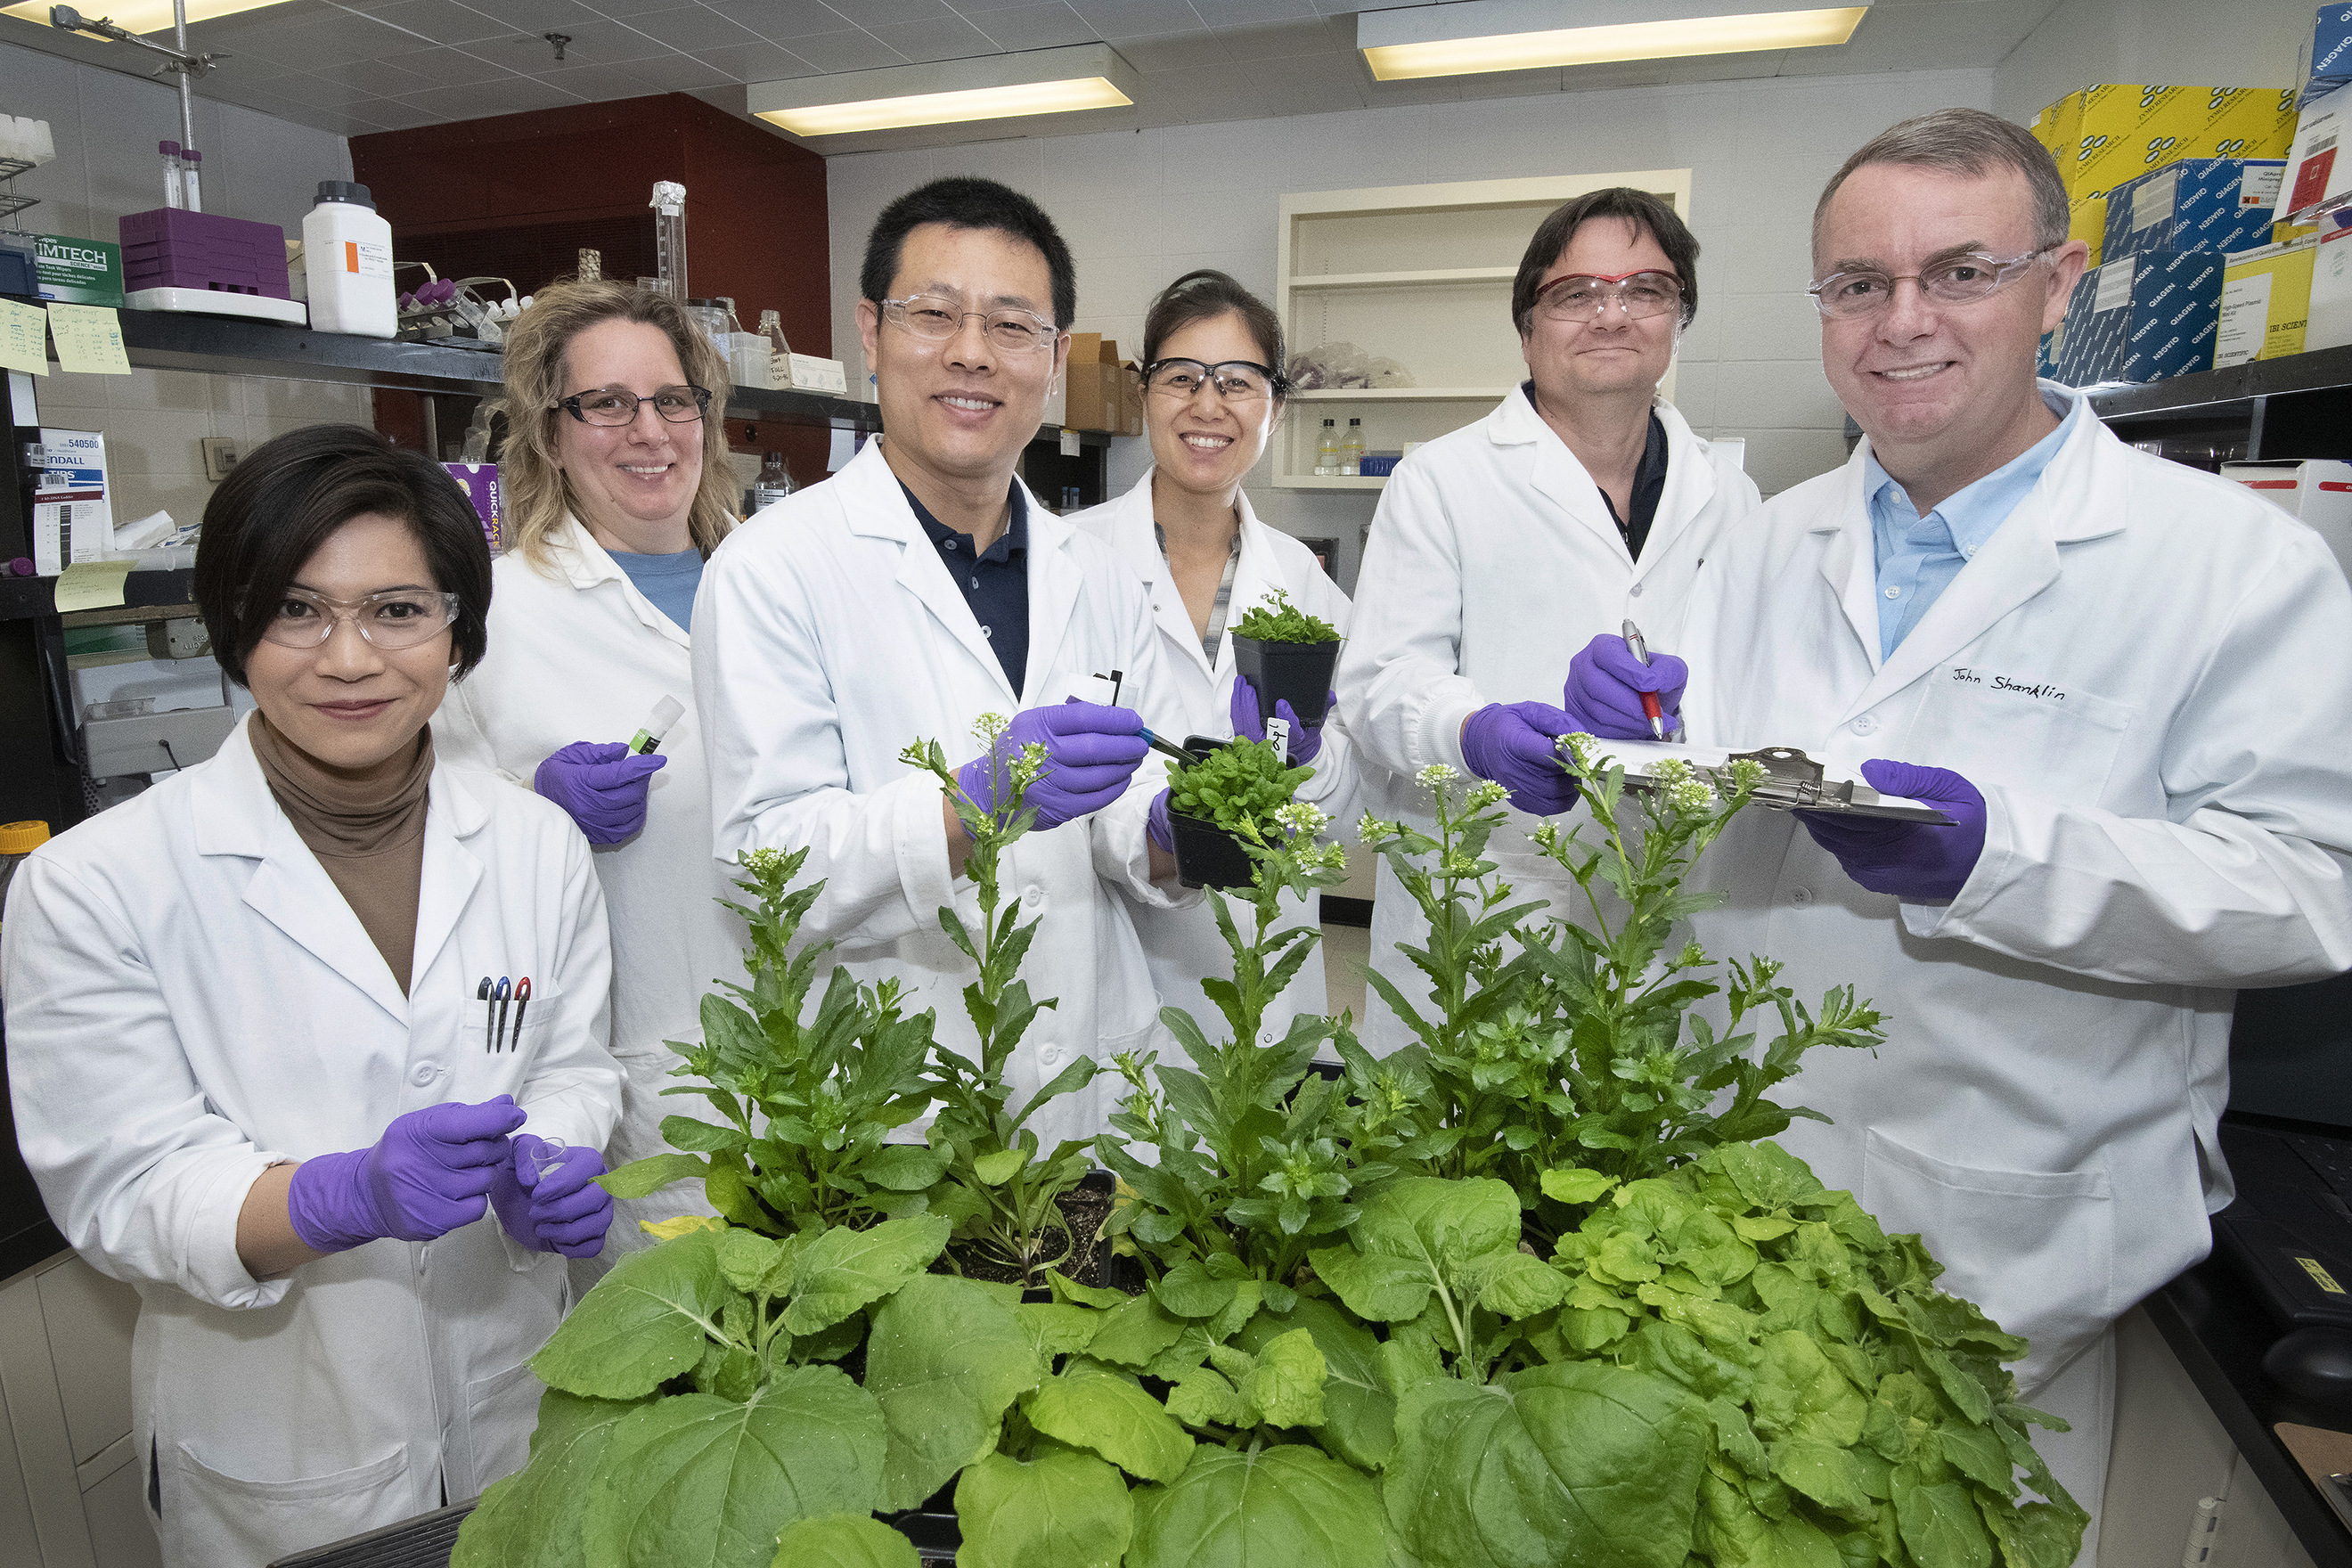 Brookhaven Lab plant scientists discovered why a protein that revs up oil synthesis also activates the brakes (l to r): Jantana Keereetaweep, Kate Kuczynski, Zhiyang Zhai, Hui Liu, Jorg Schwender, John Shanklin.